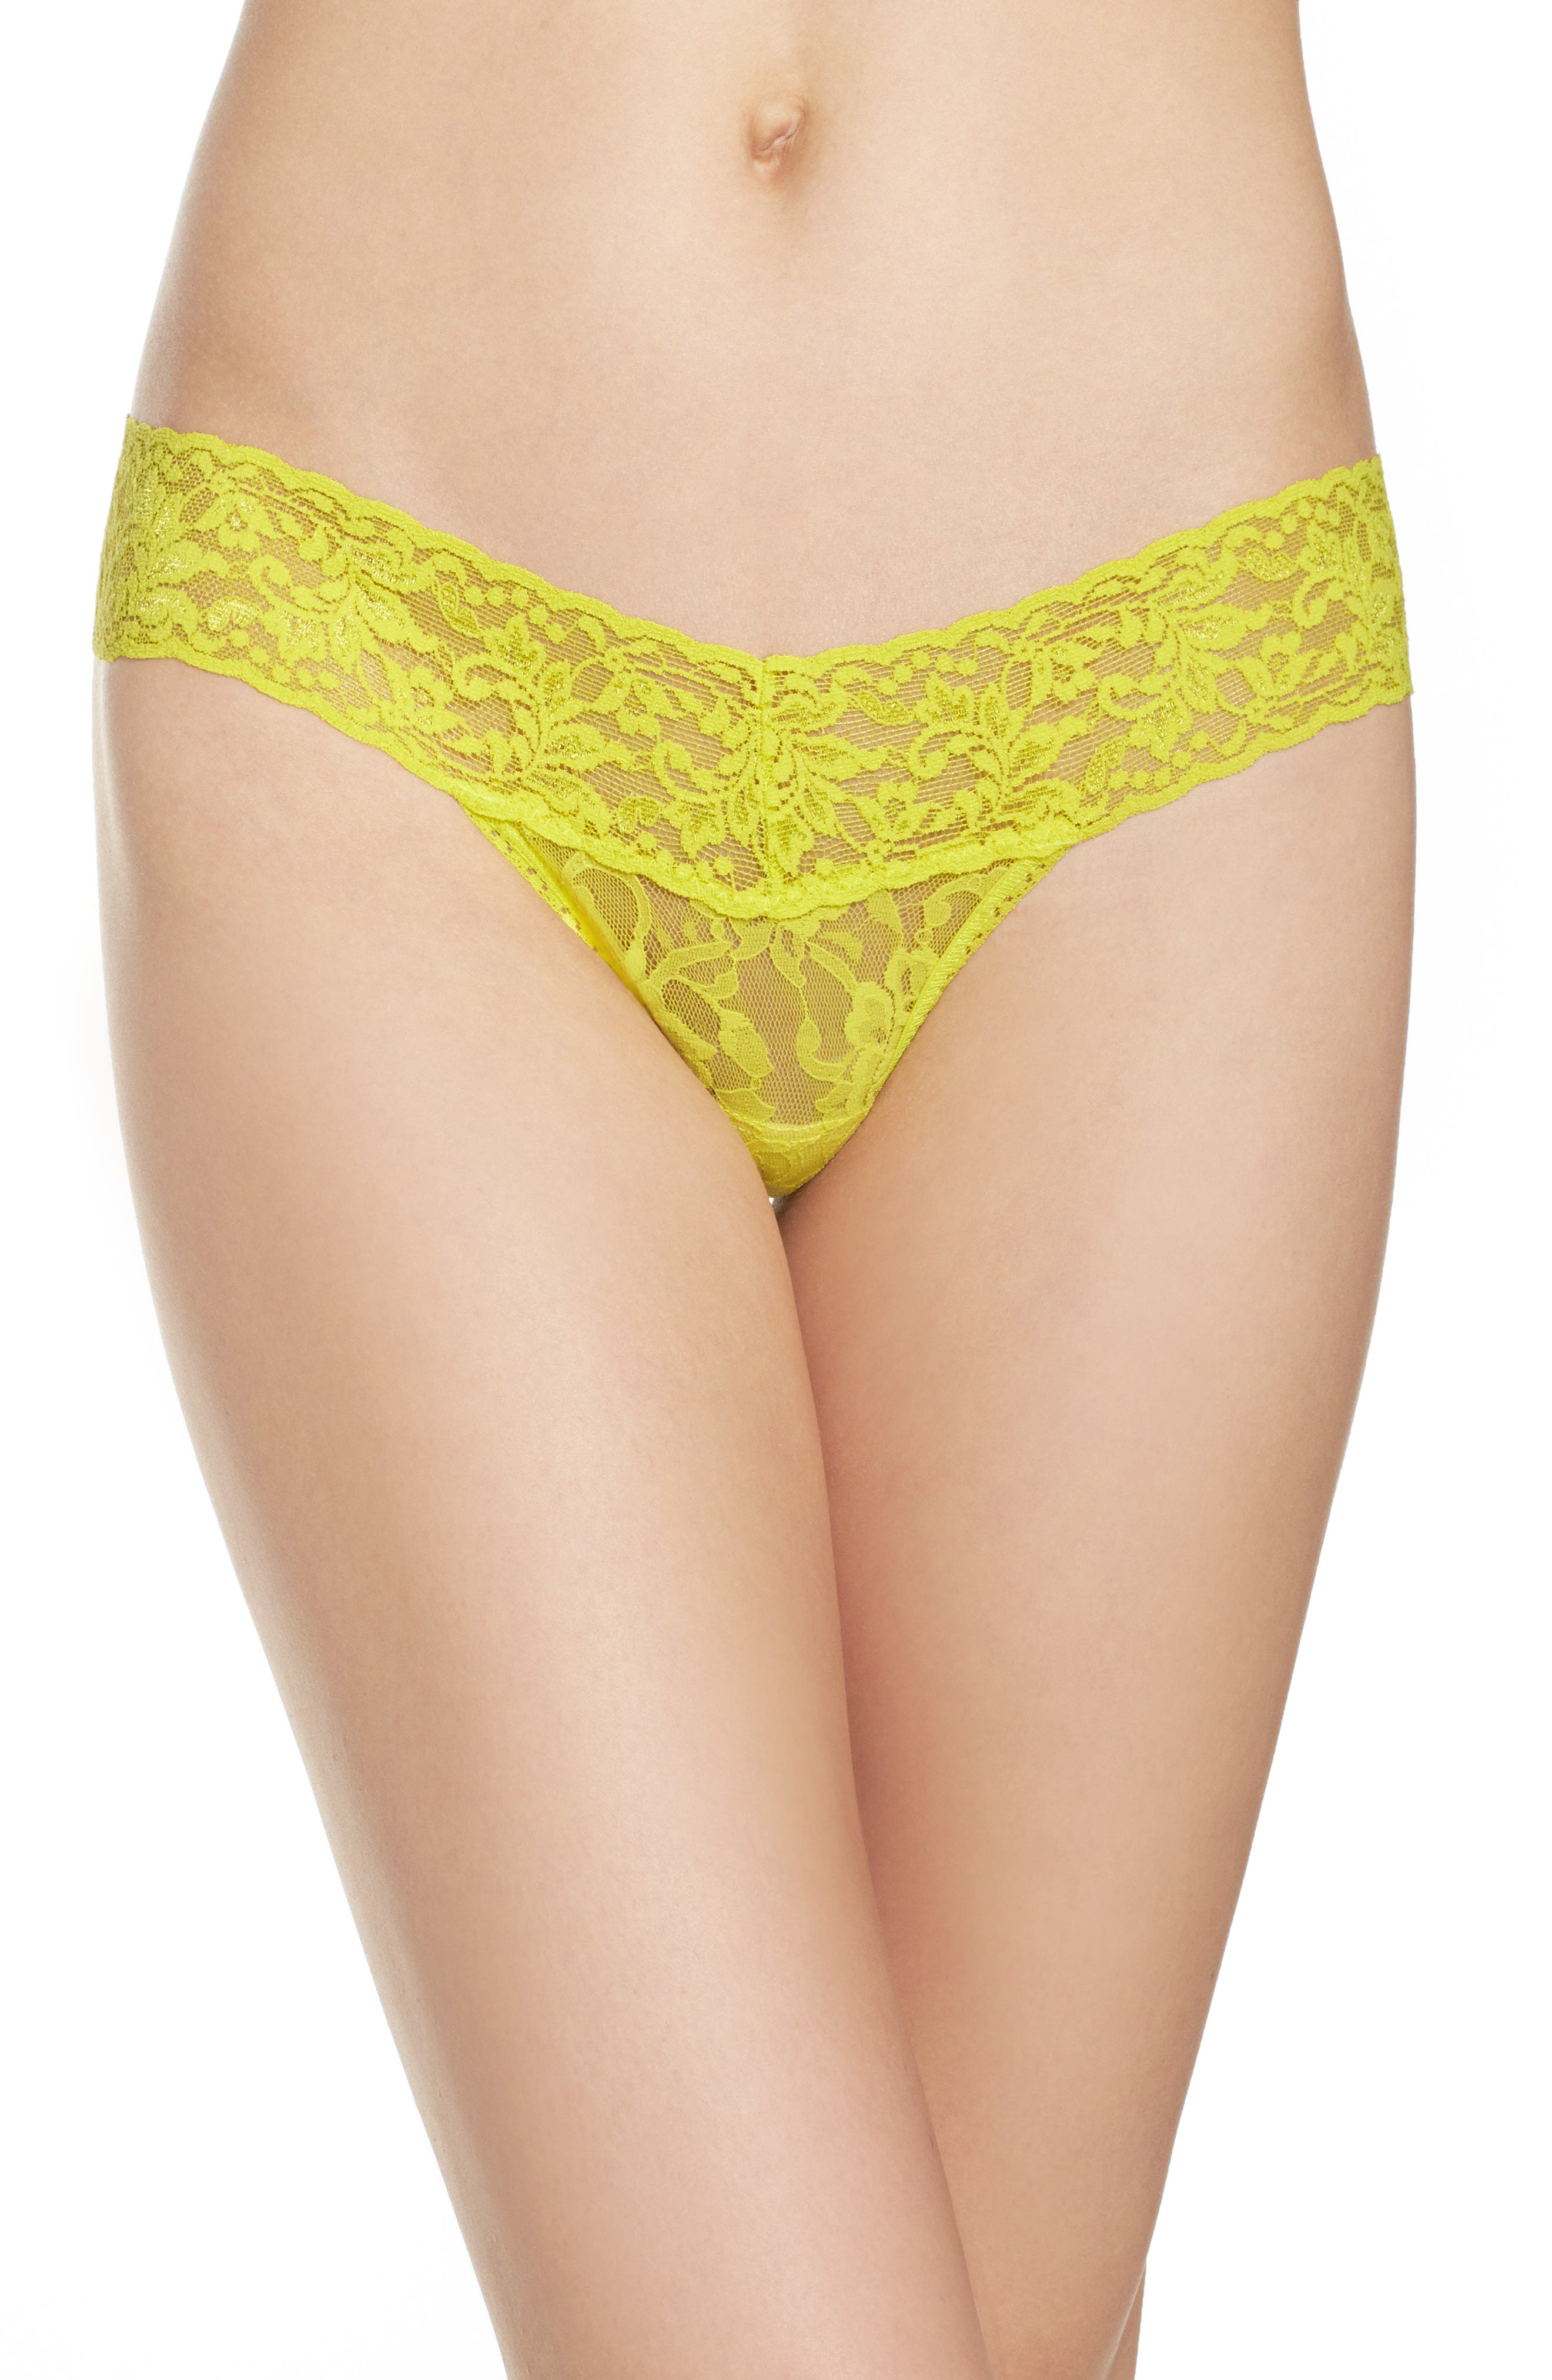 Alternate Image 1 Selected - Hanky Panky Signature Lace Low Rise Thong